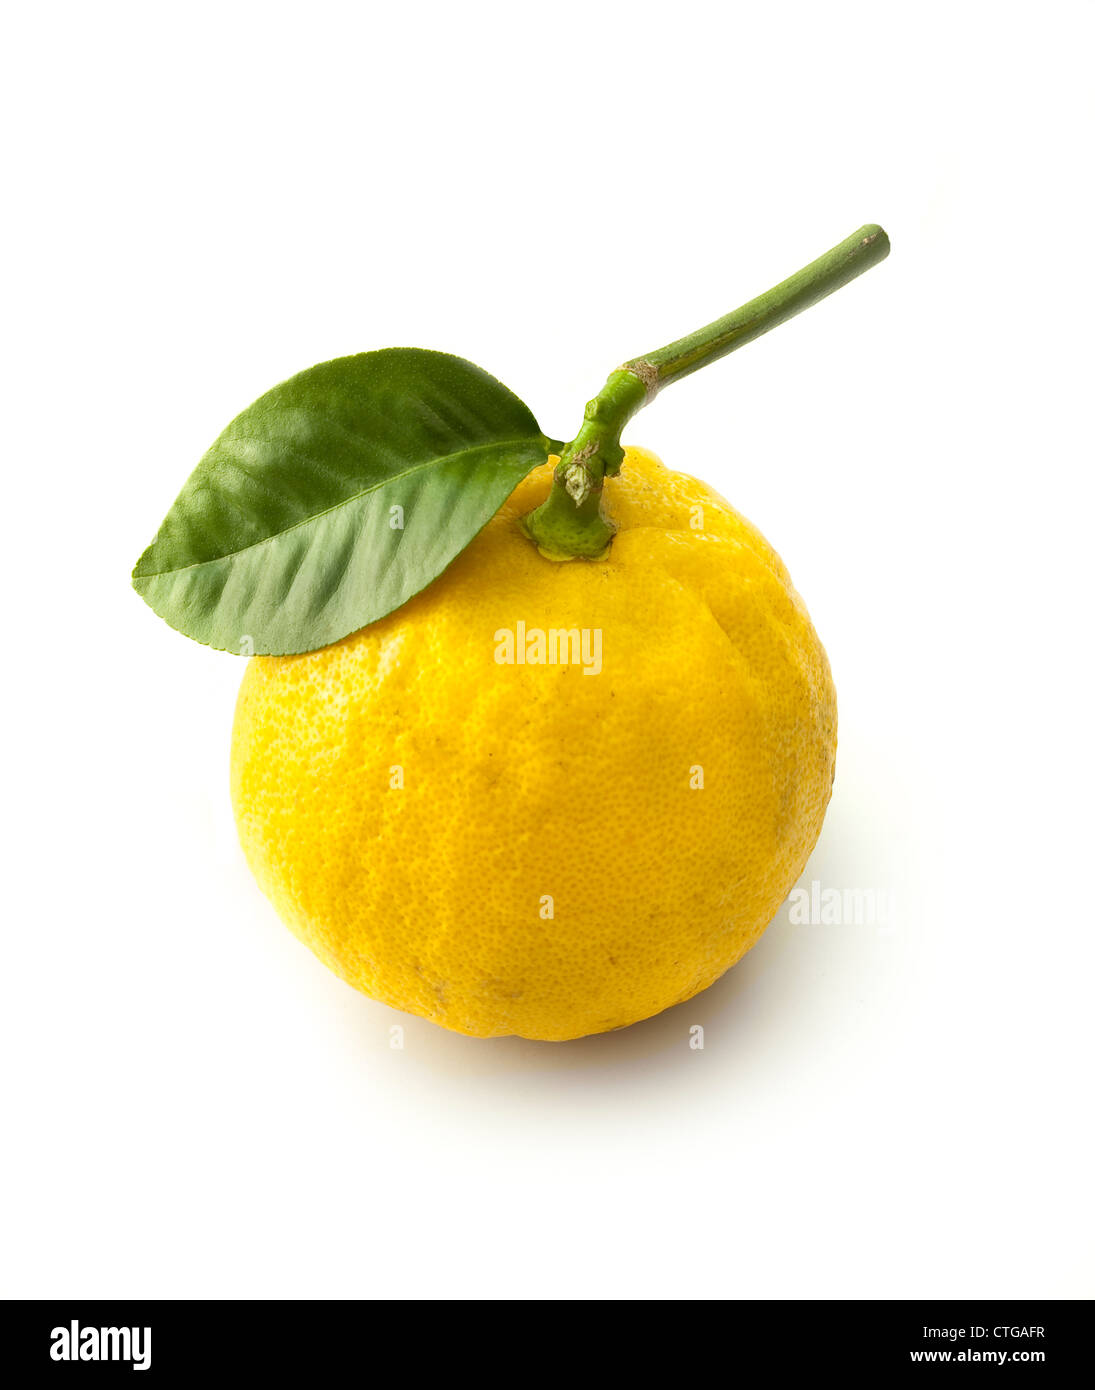 Citrus bergamia, Bergamot, Studio shot of single yellow fruit on leafy stem against a white background. - Stock Image